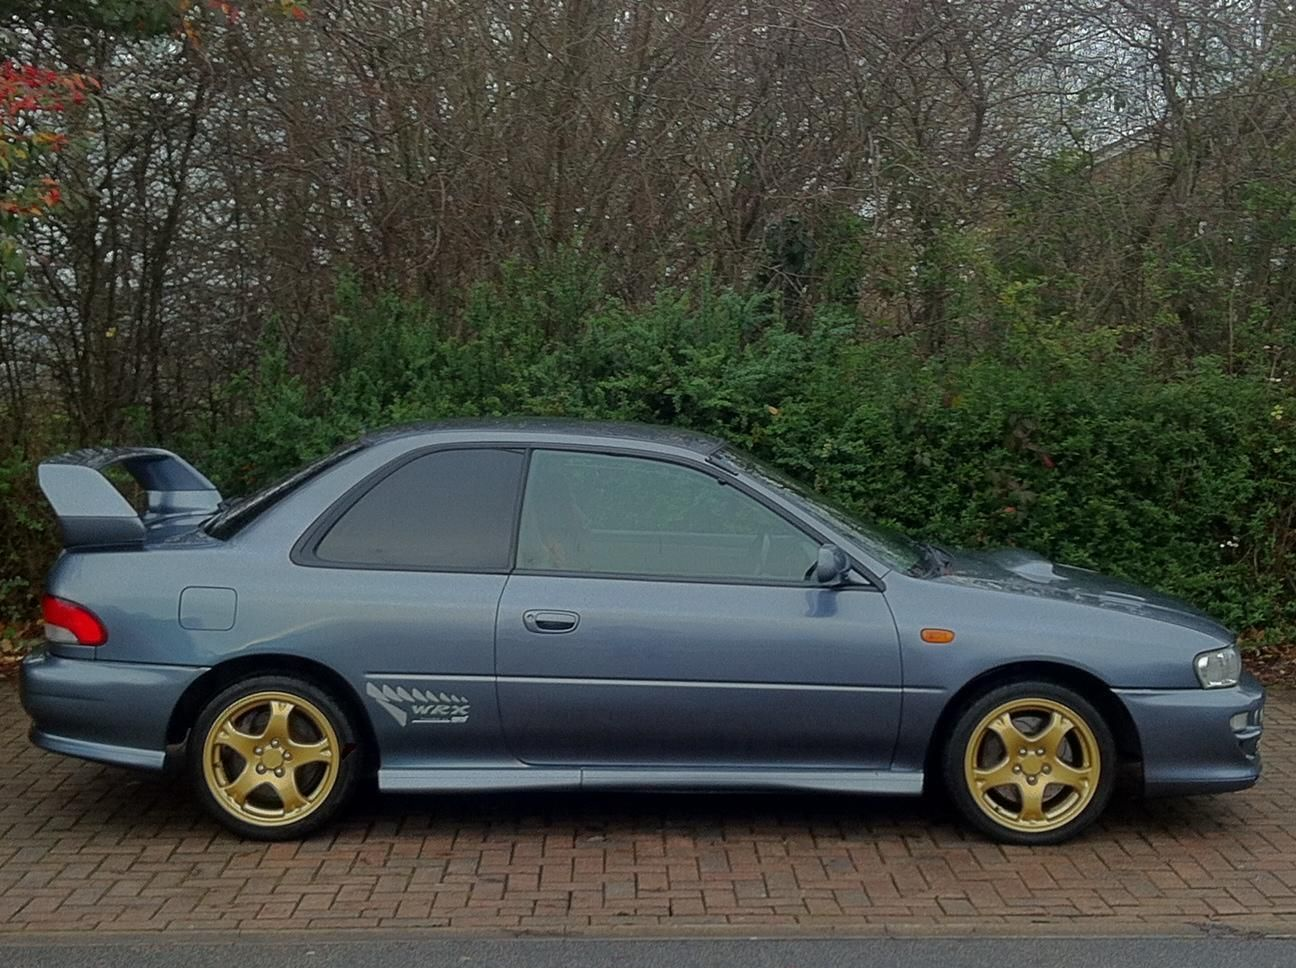 Looking For A 1999 Subaru Impreza 2 0 Wrx Sti Type R V5 2 Door Coupe P1 This One Is On Ebay Subaru Impreza Subaru Wrx Sti